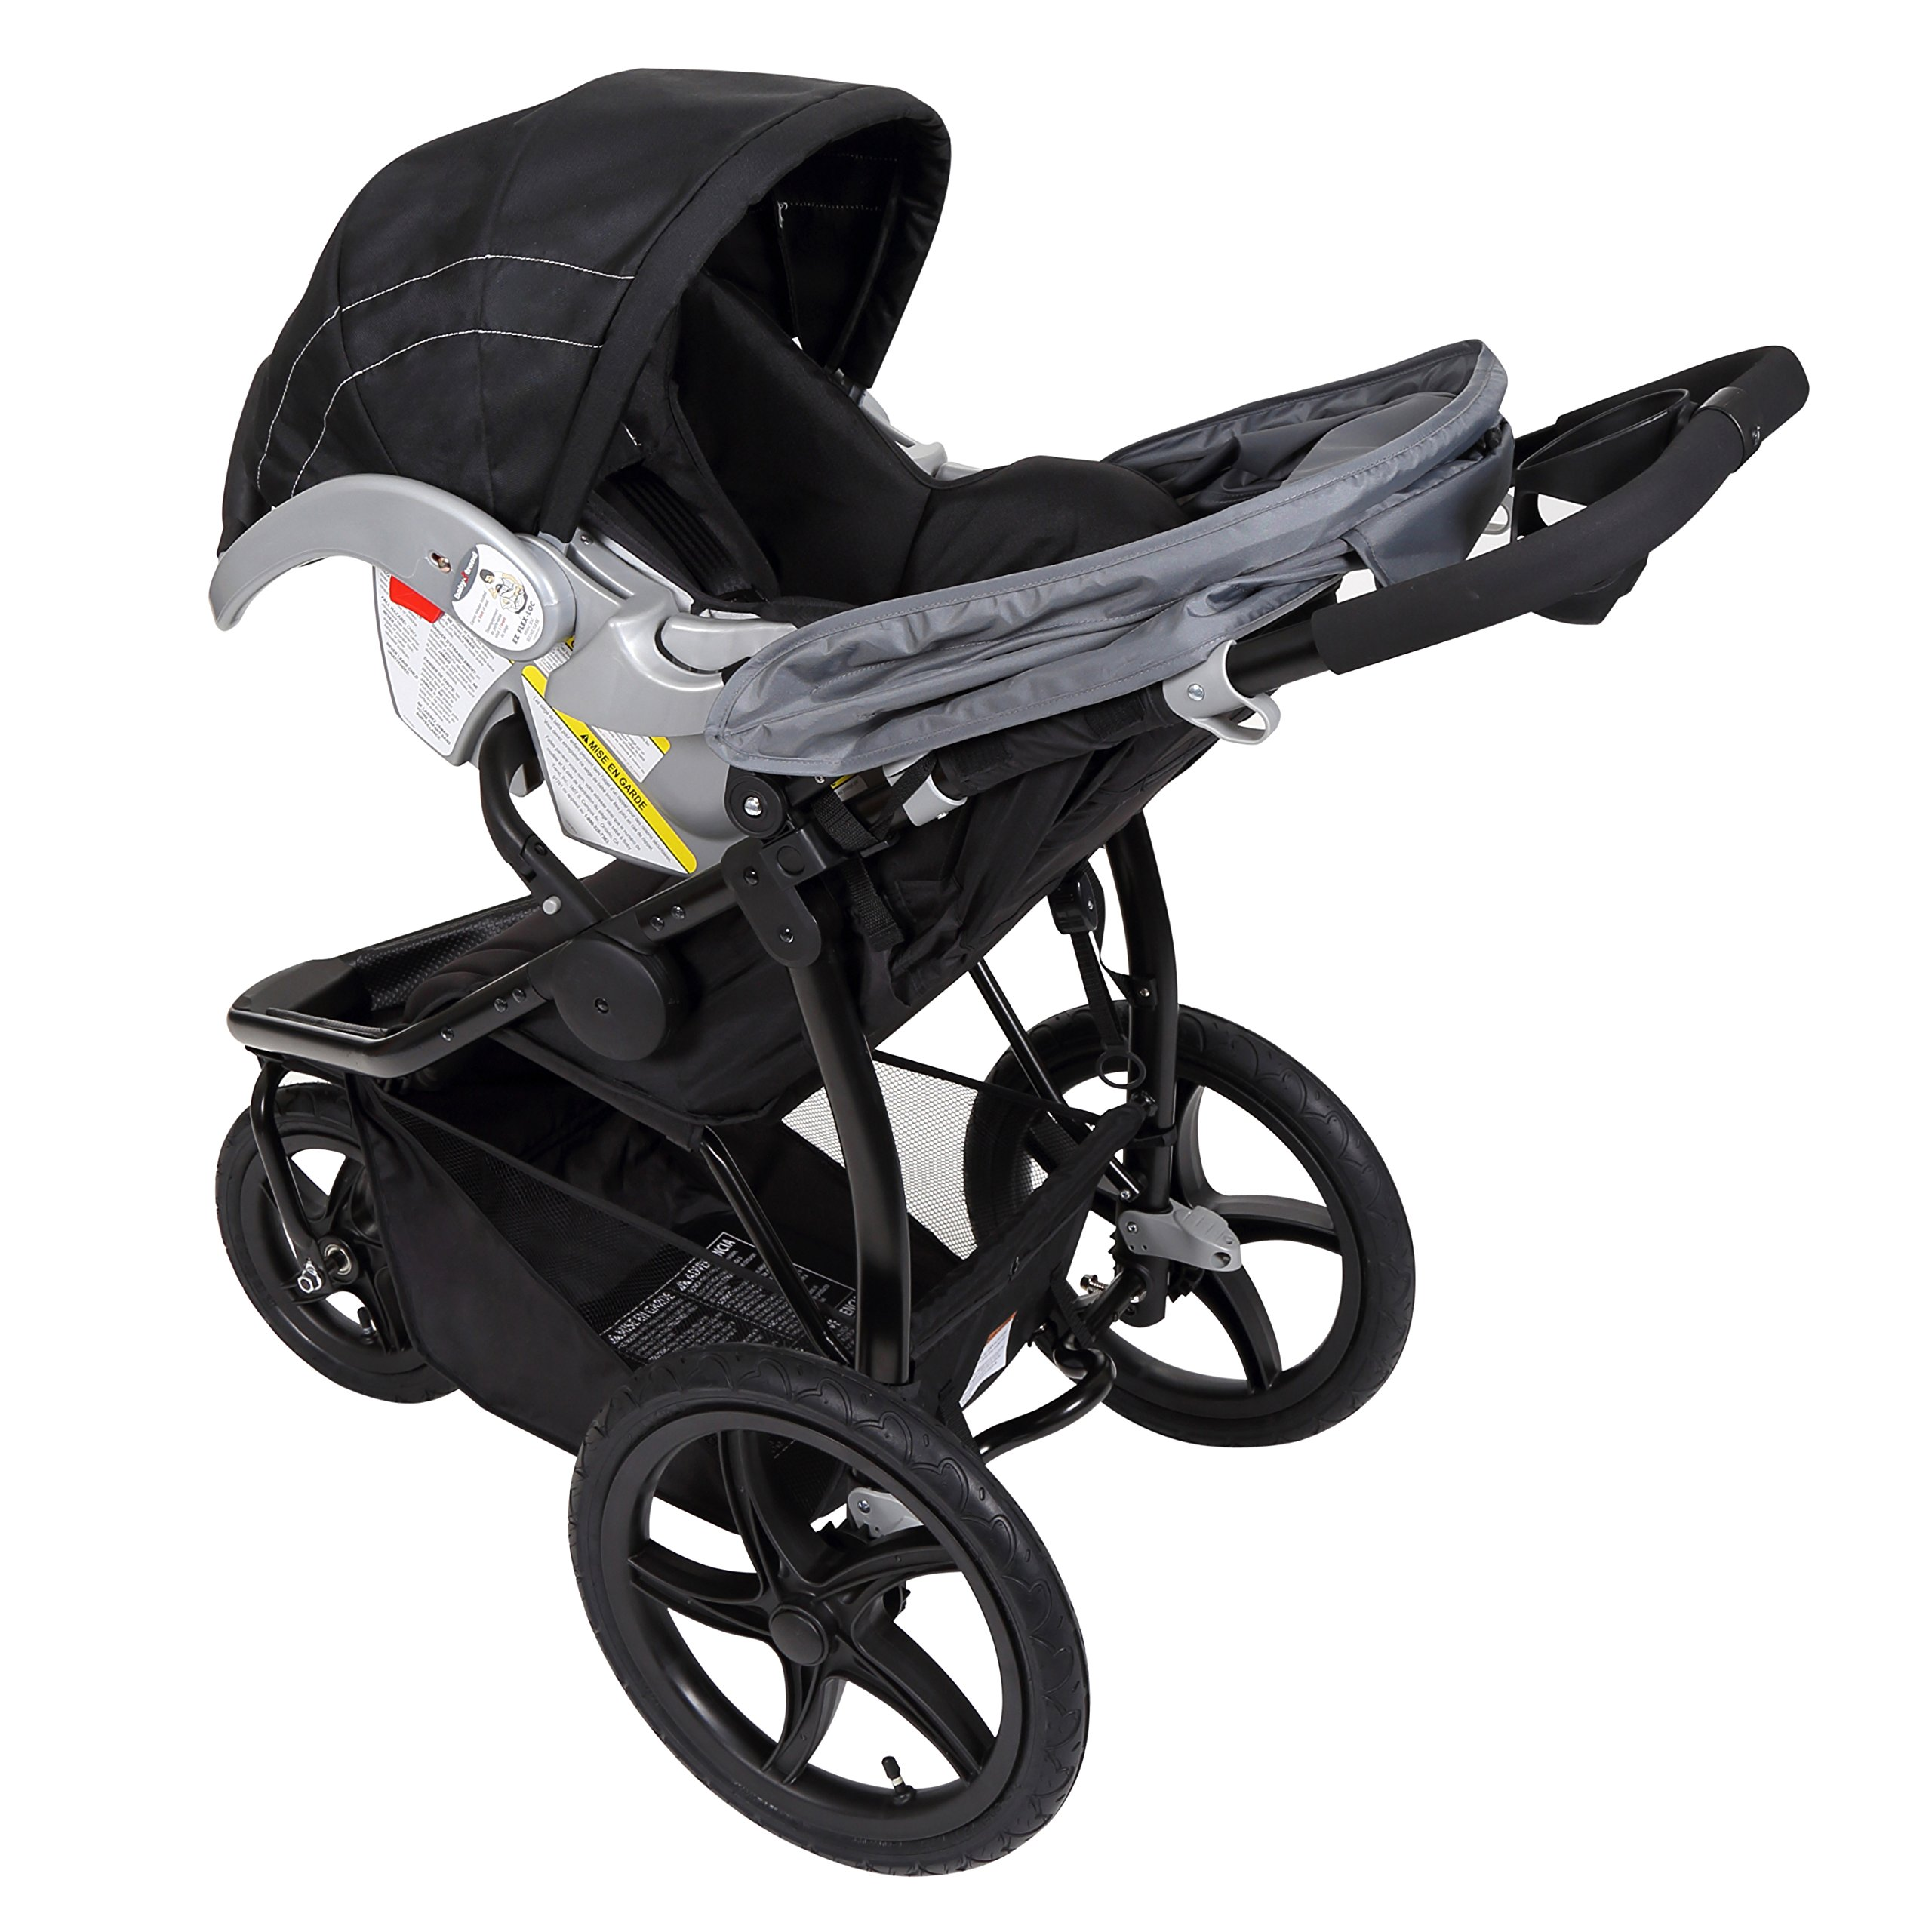 Baby Trend Stealth Jogging Stroller, Alloy by Baby Trend (Image #3)